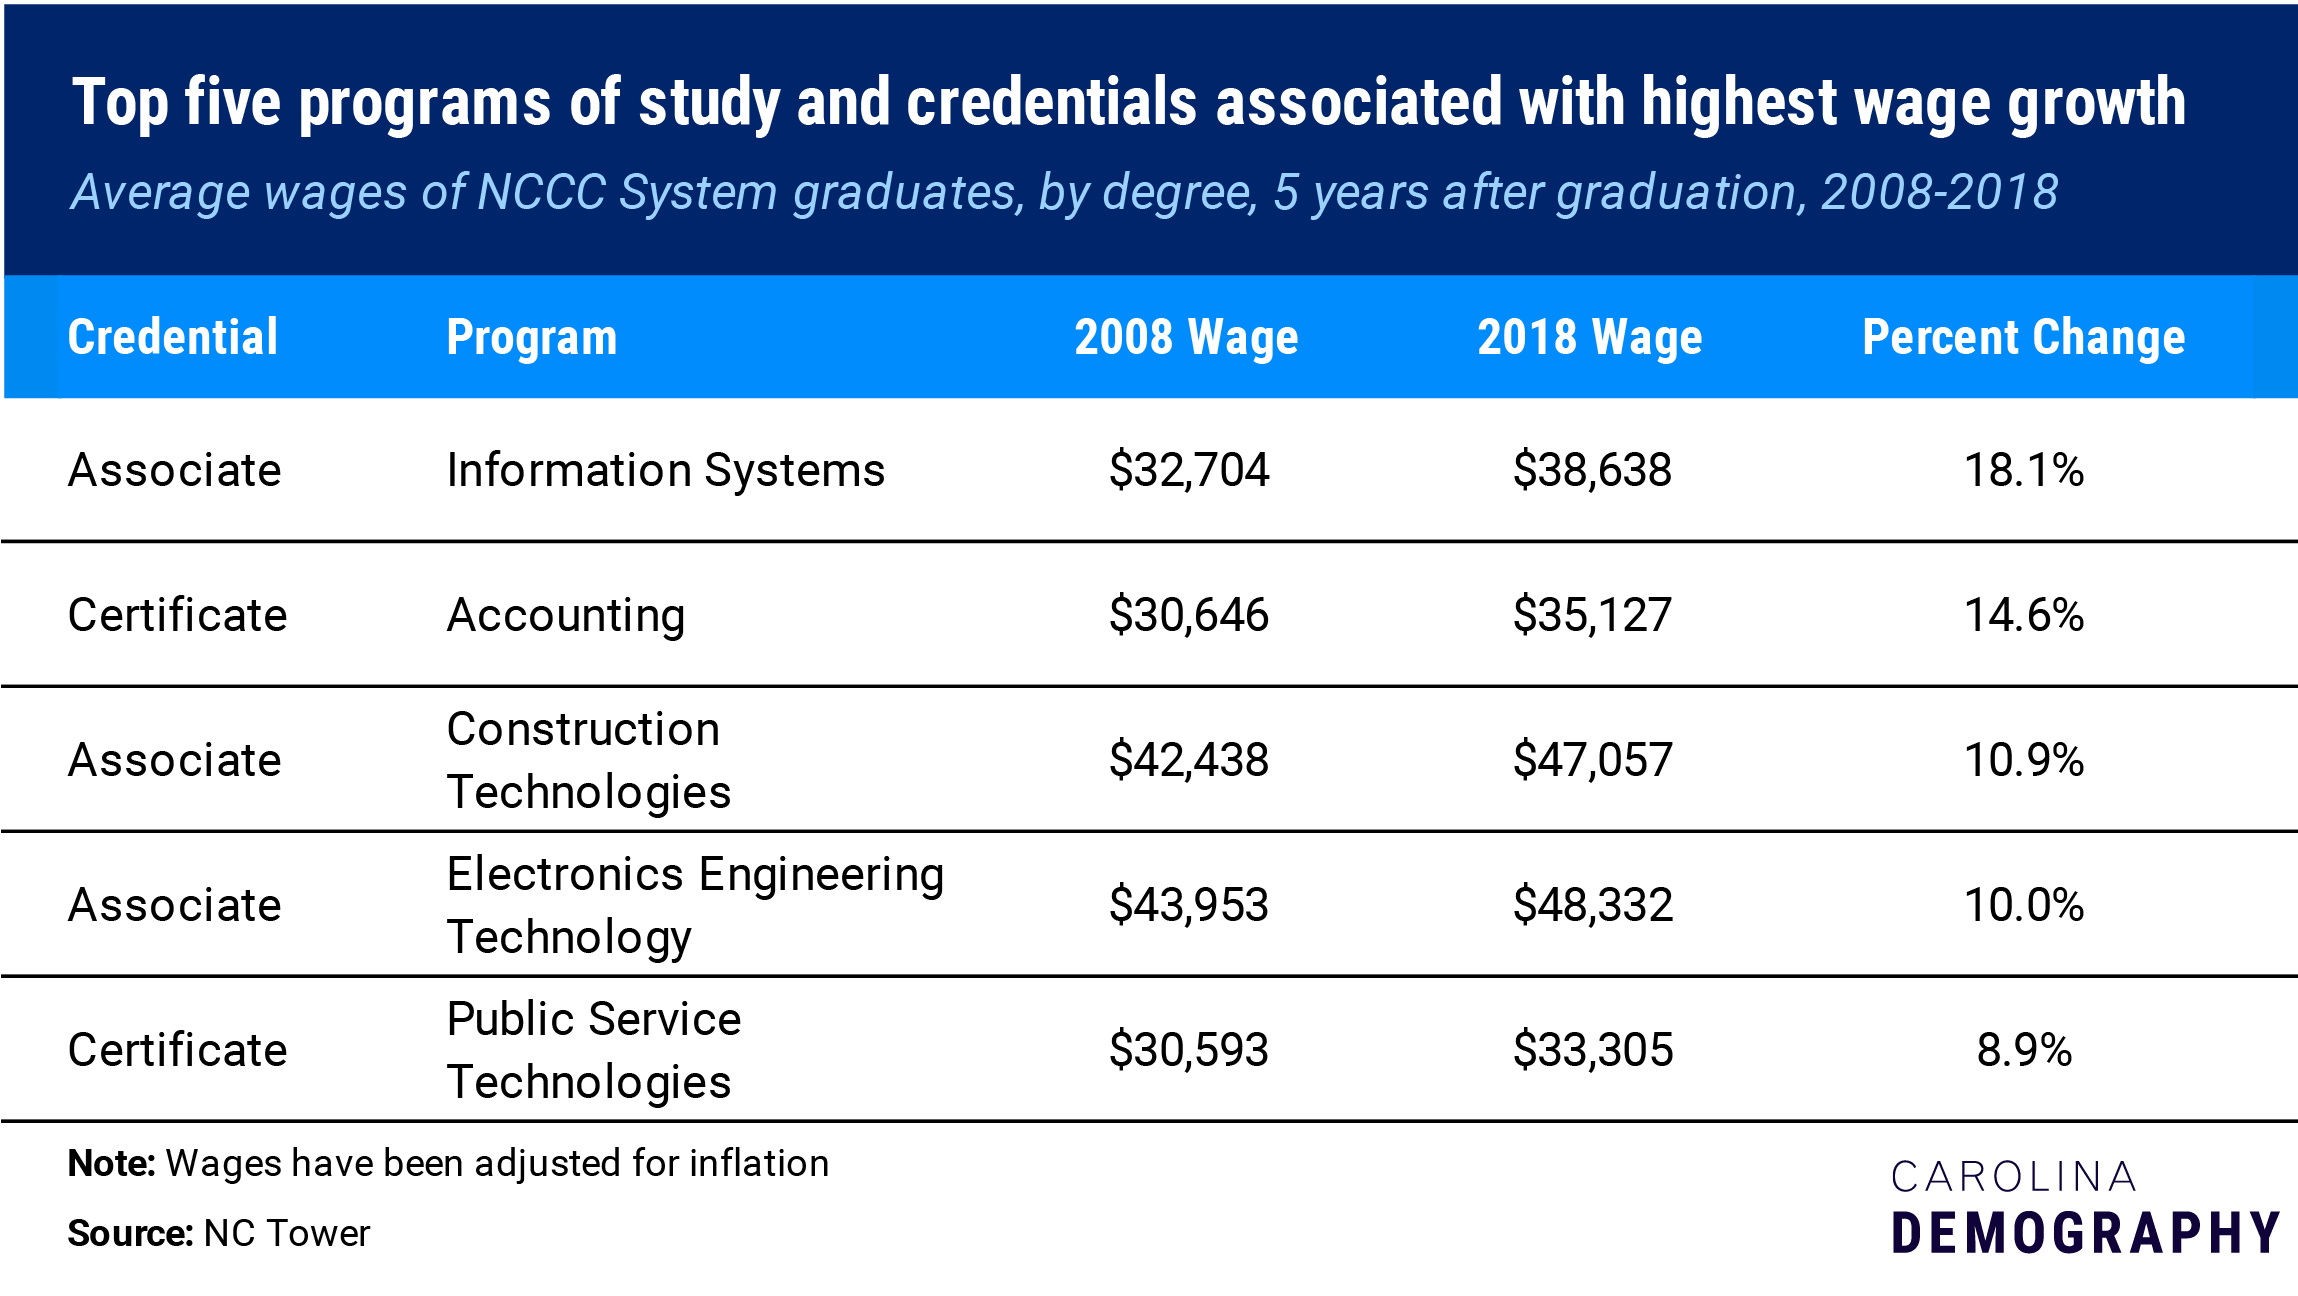 top 5 programs and certificates associated with highest wage growth